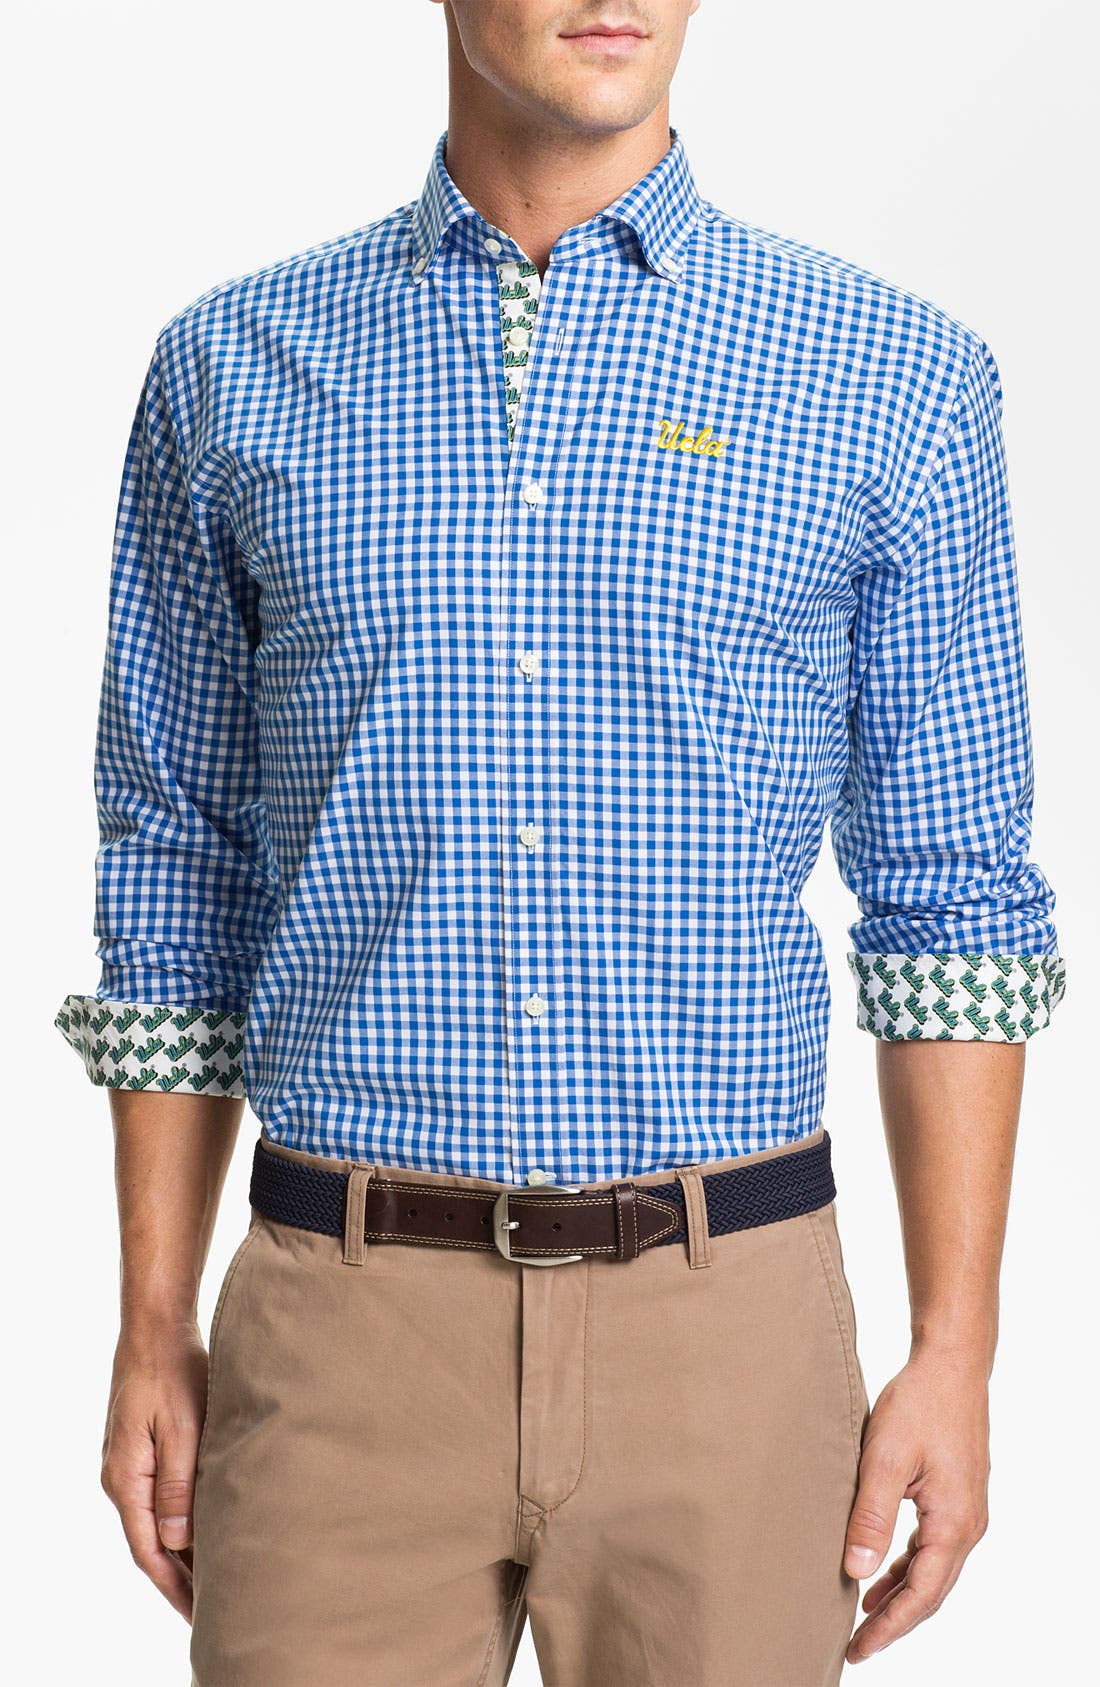 Alternate Image 1 Selected - Thomas Dean 'UCLA' Gingham Sport Shirt